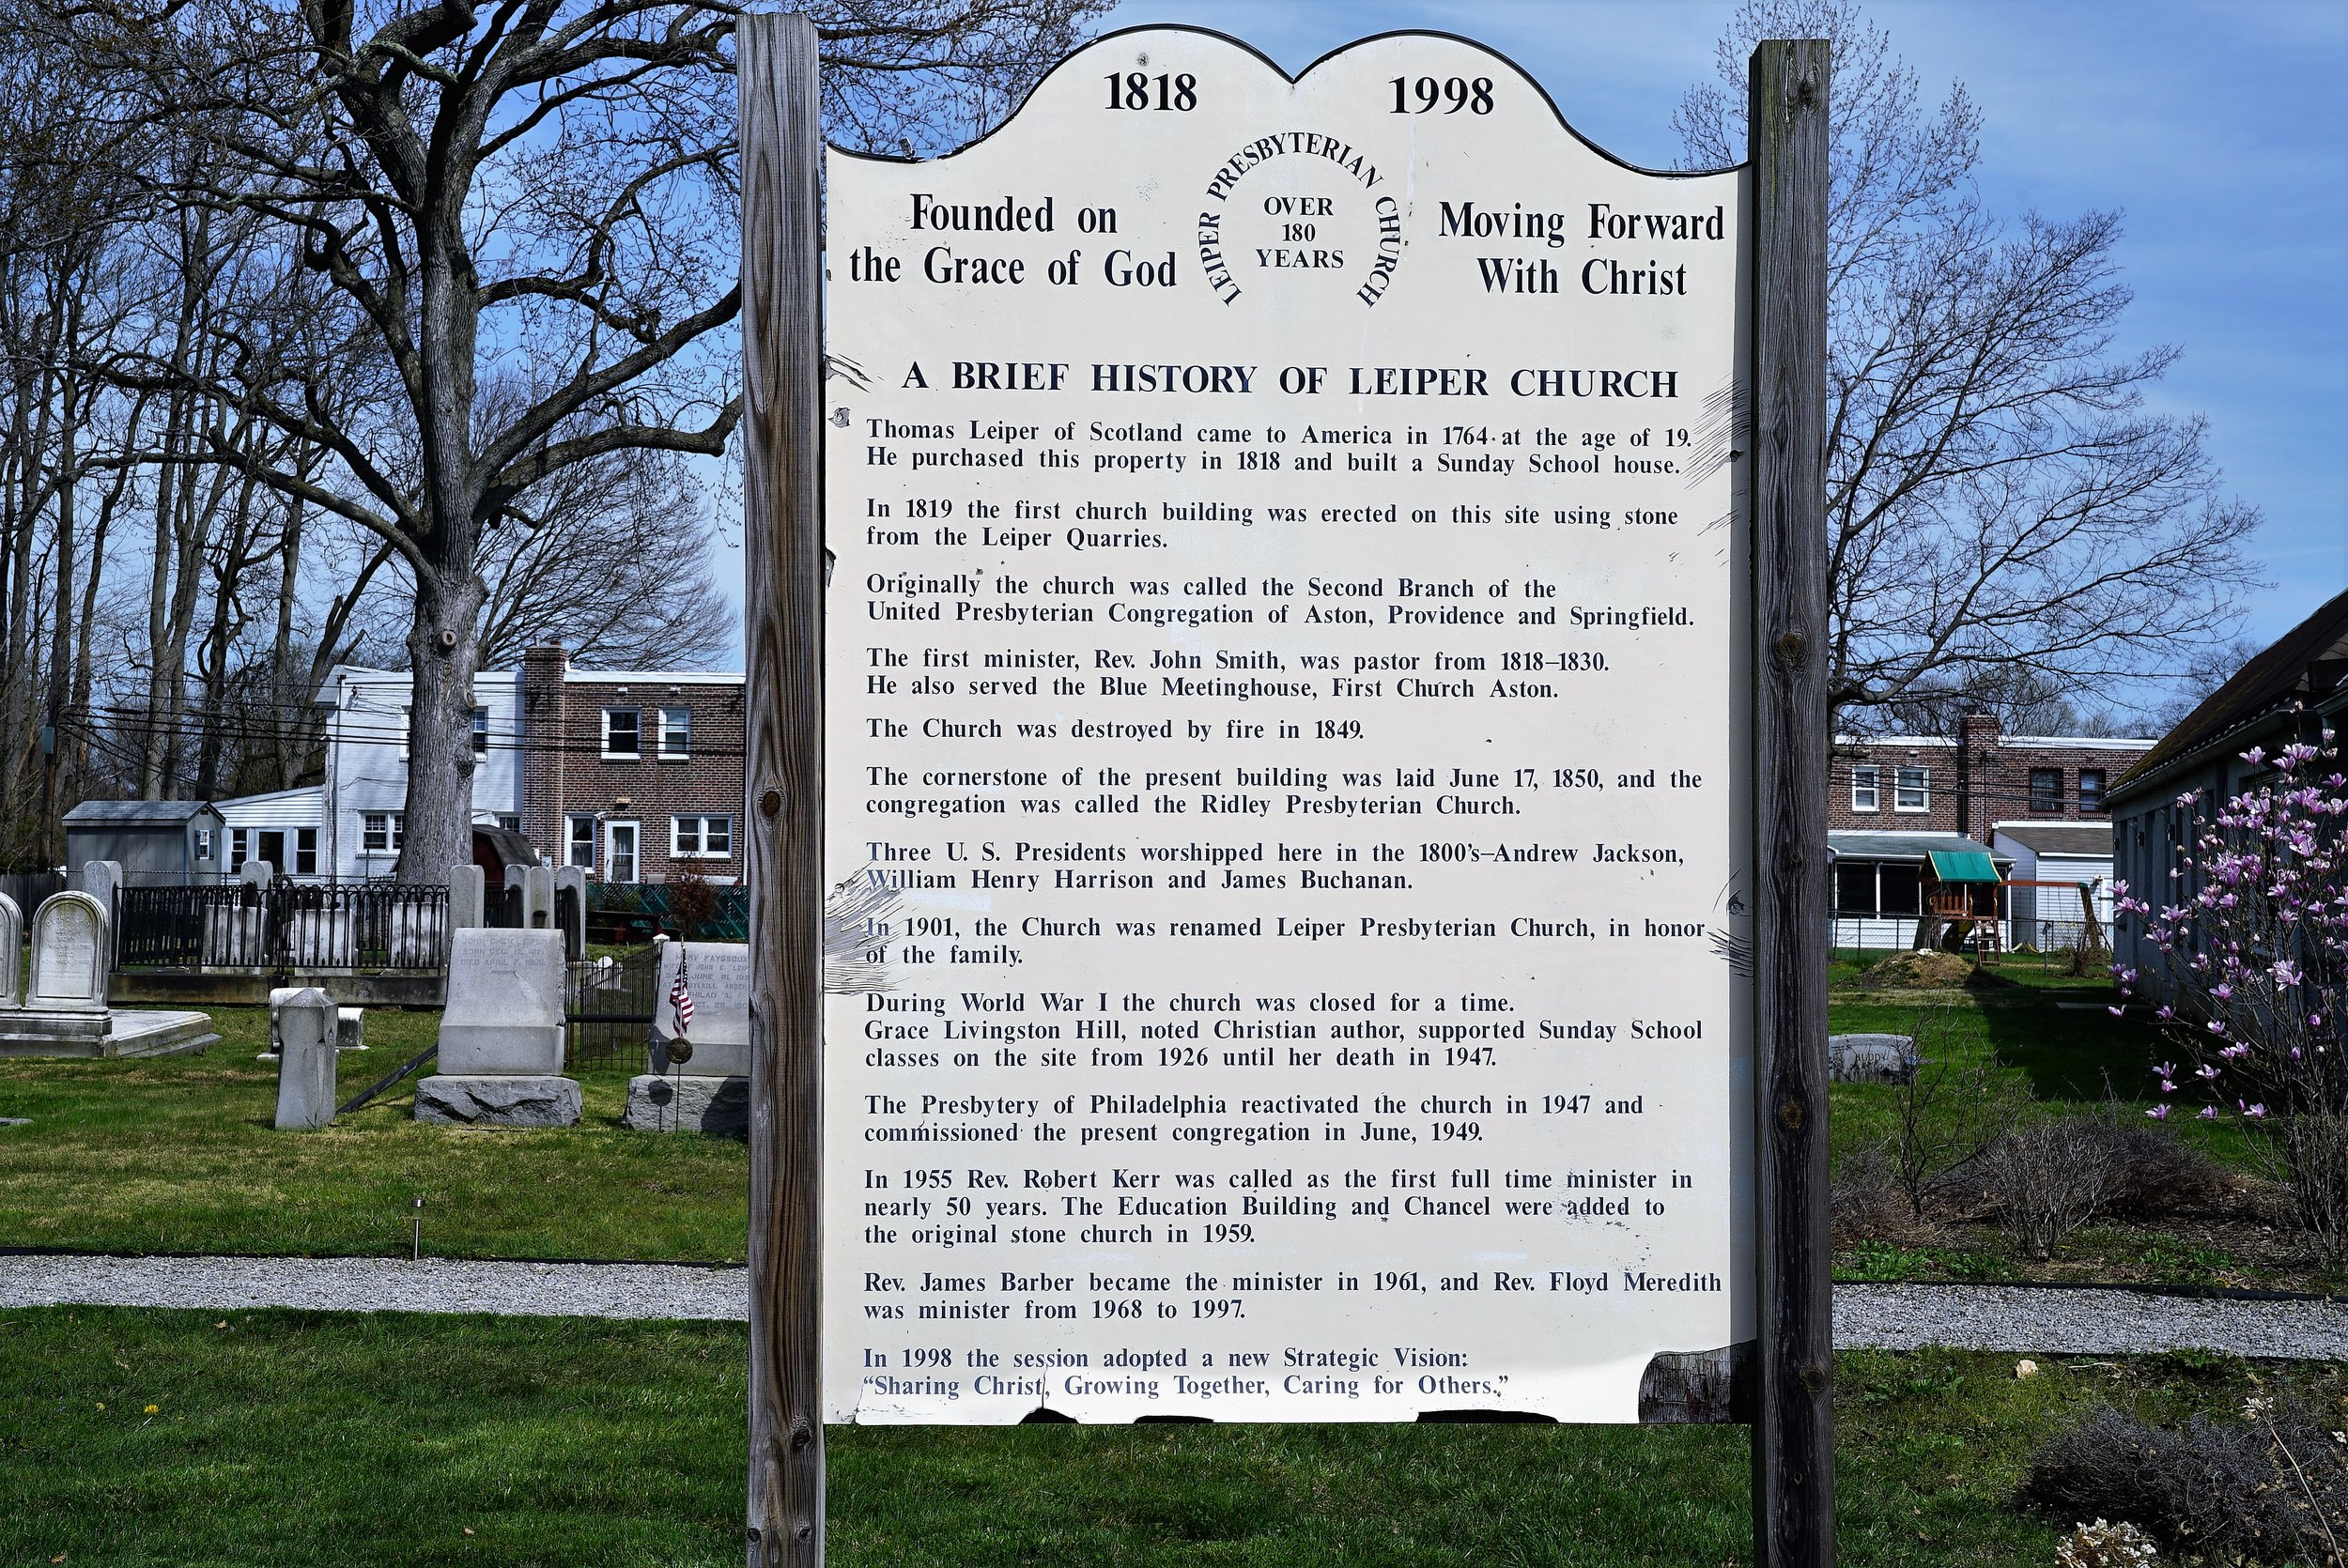 A sign just outside of the Leiper Presbyterian Church Cemetery explaining the history of the property.